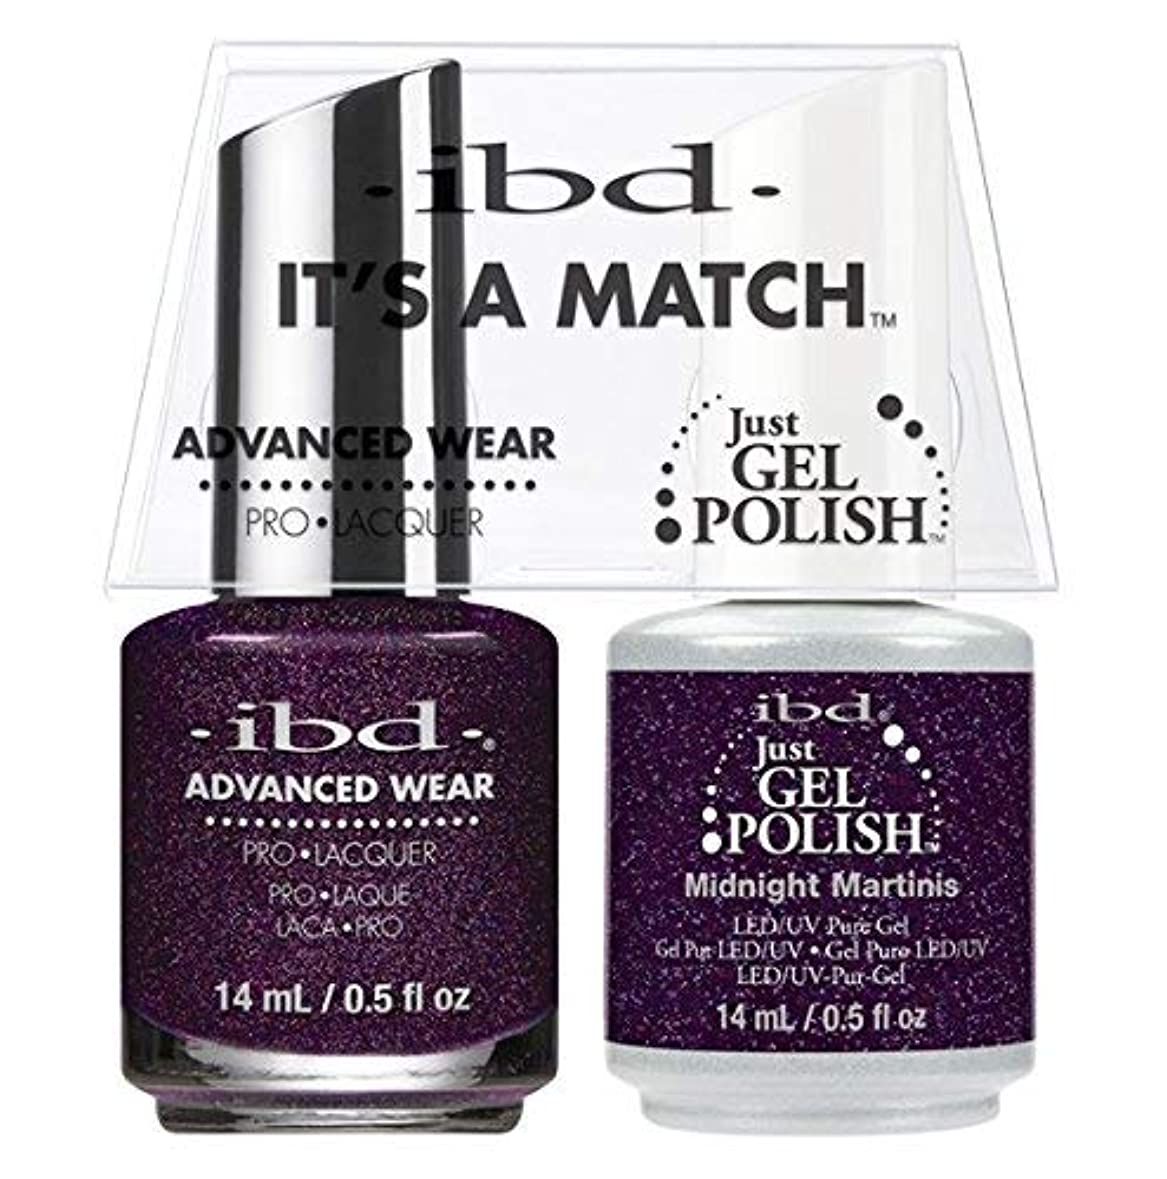 ibd - It's A Match -Duo Pack- Midnight Martinis - 14 mL / 0.5 oz Each